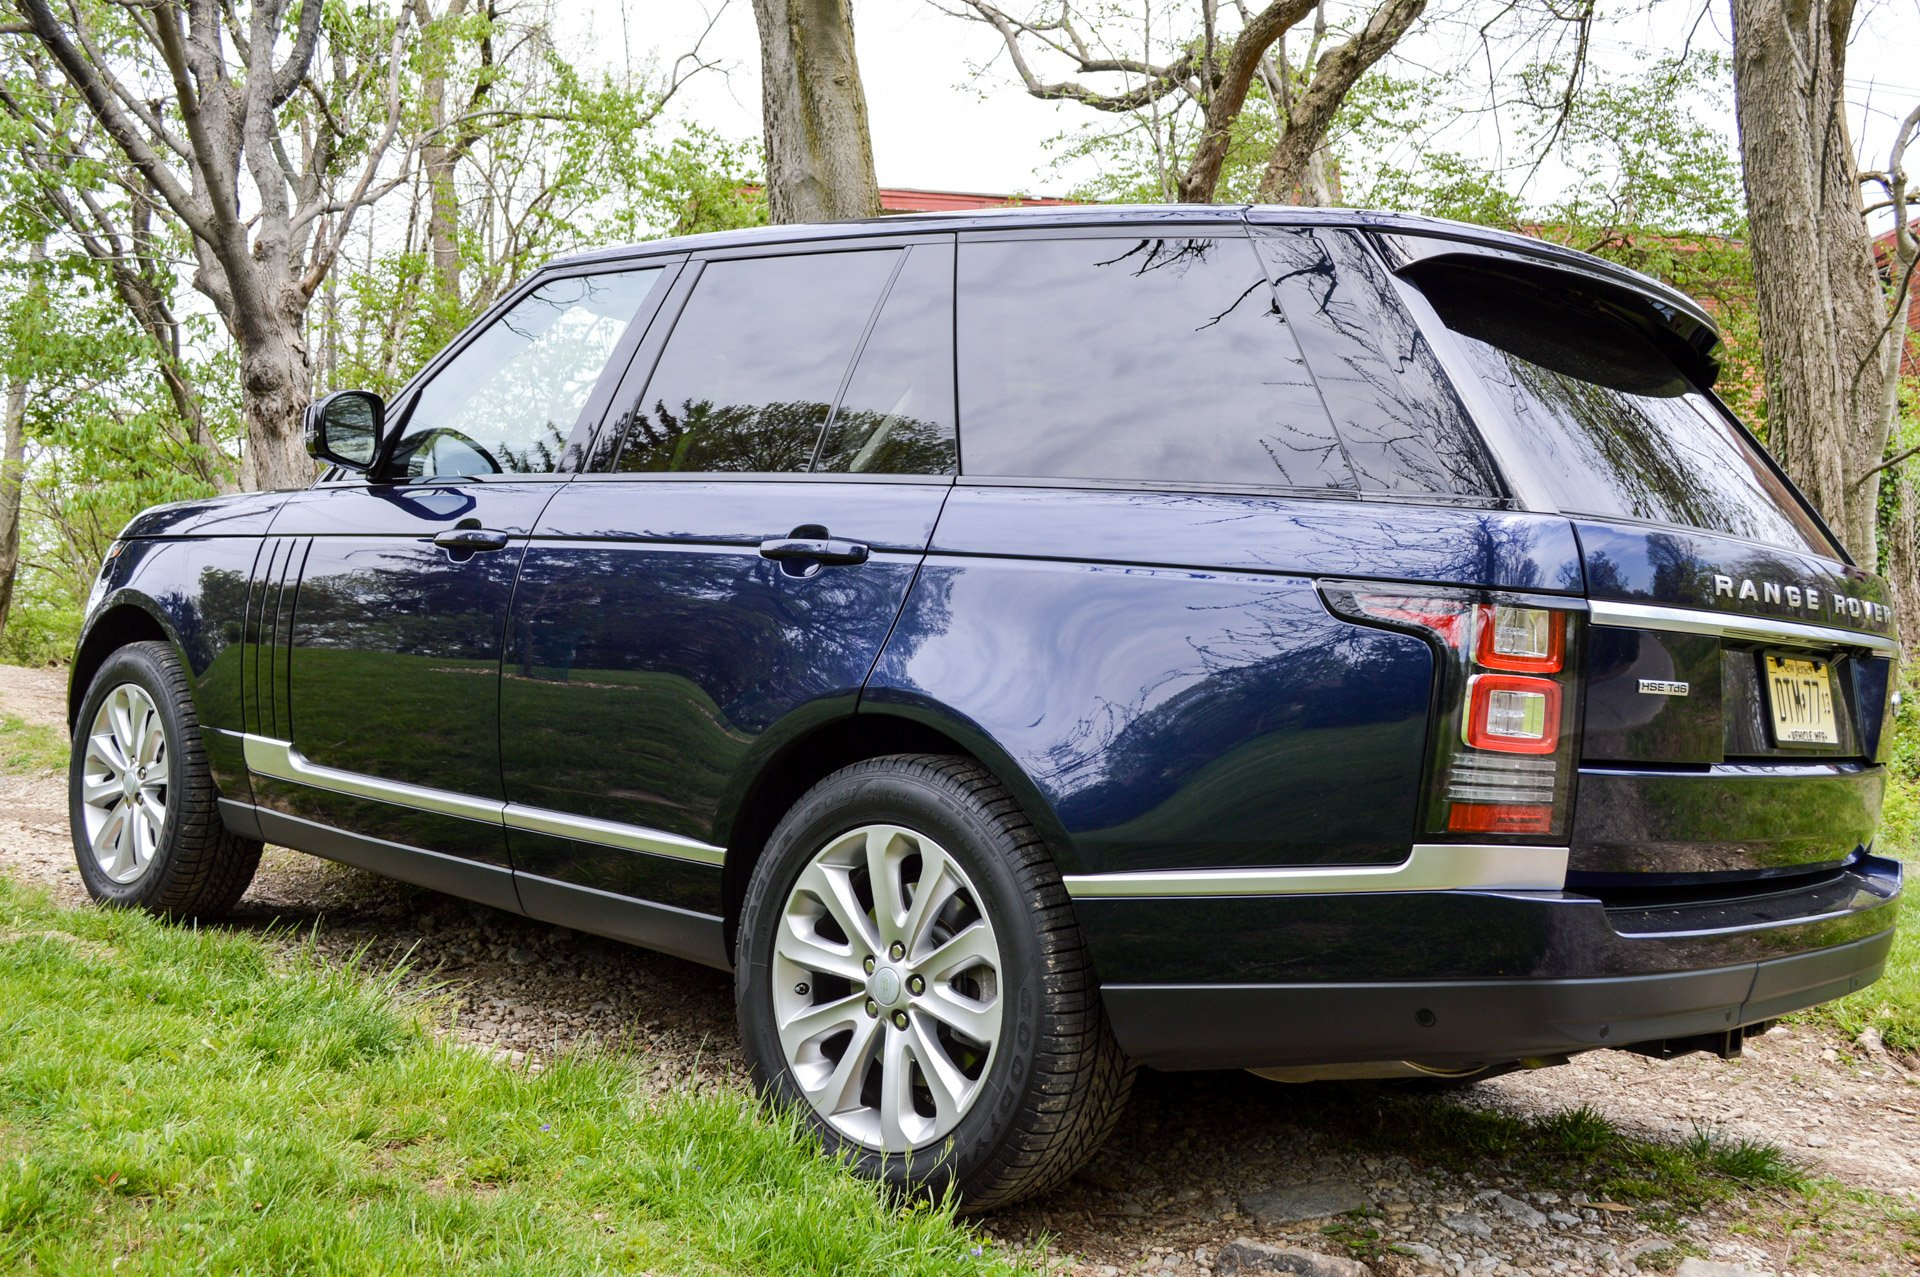 composite convertible evoque lease hse research awd groovecar metallic dynamic blue landrover range loire se rover miami land large